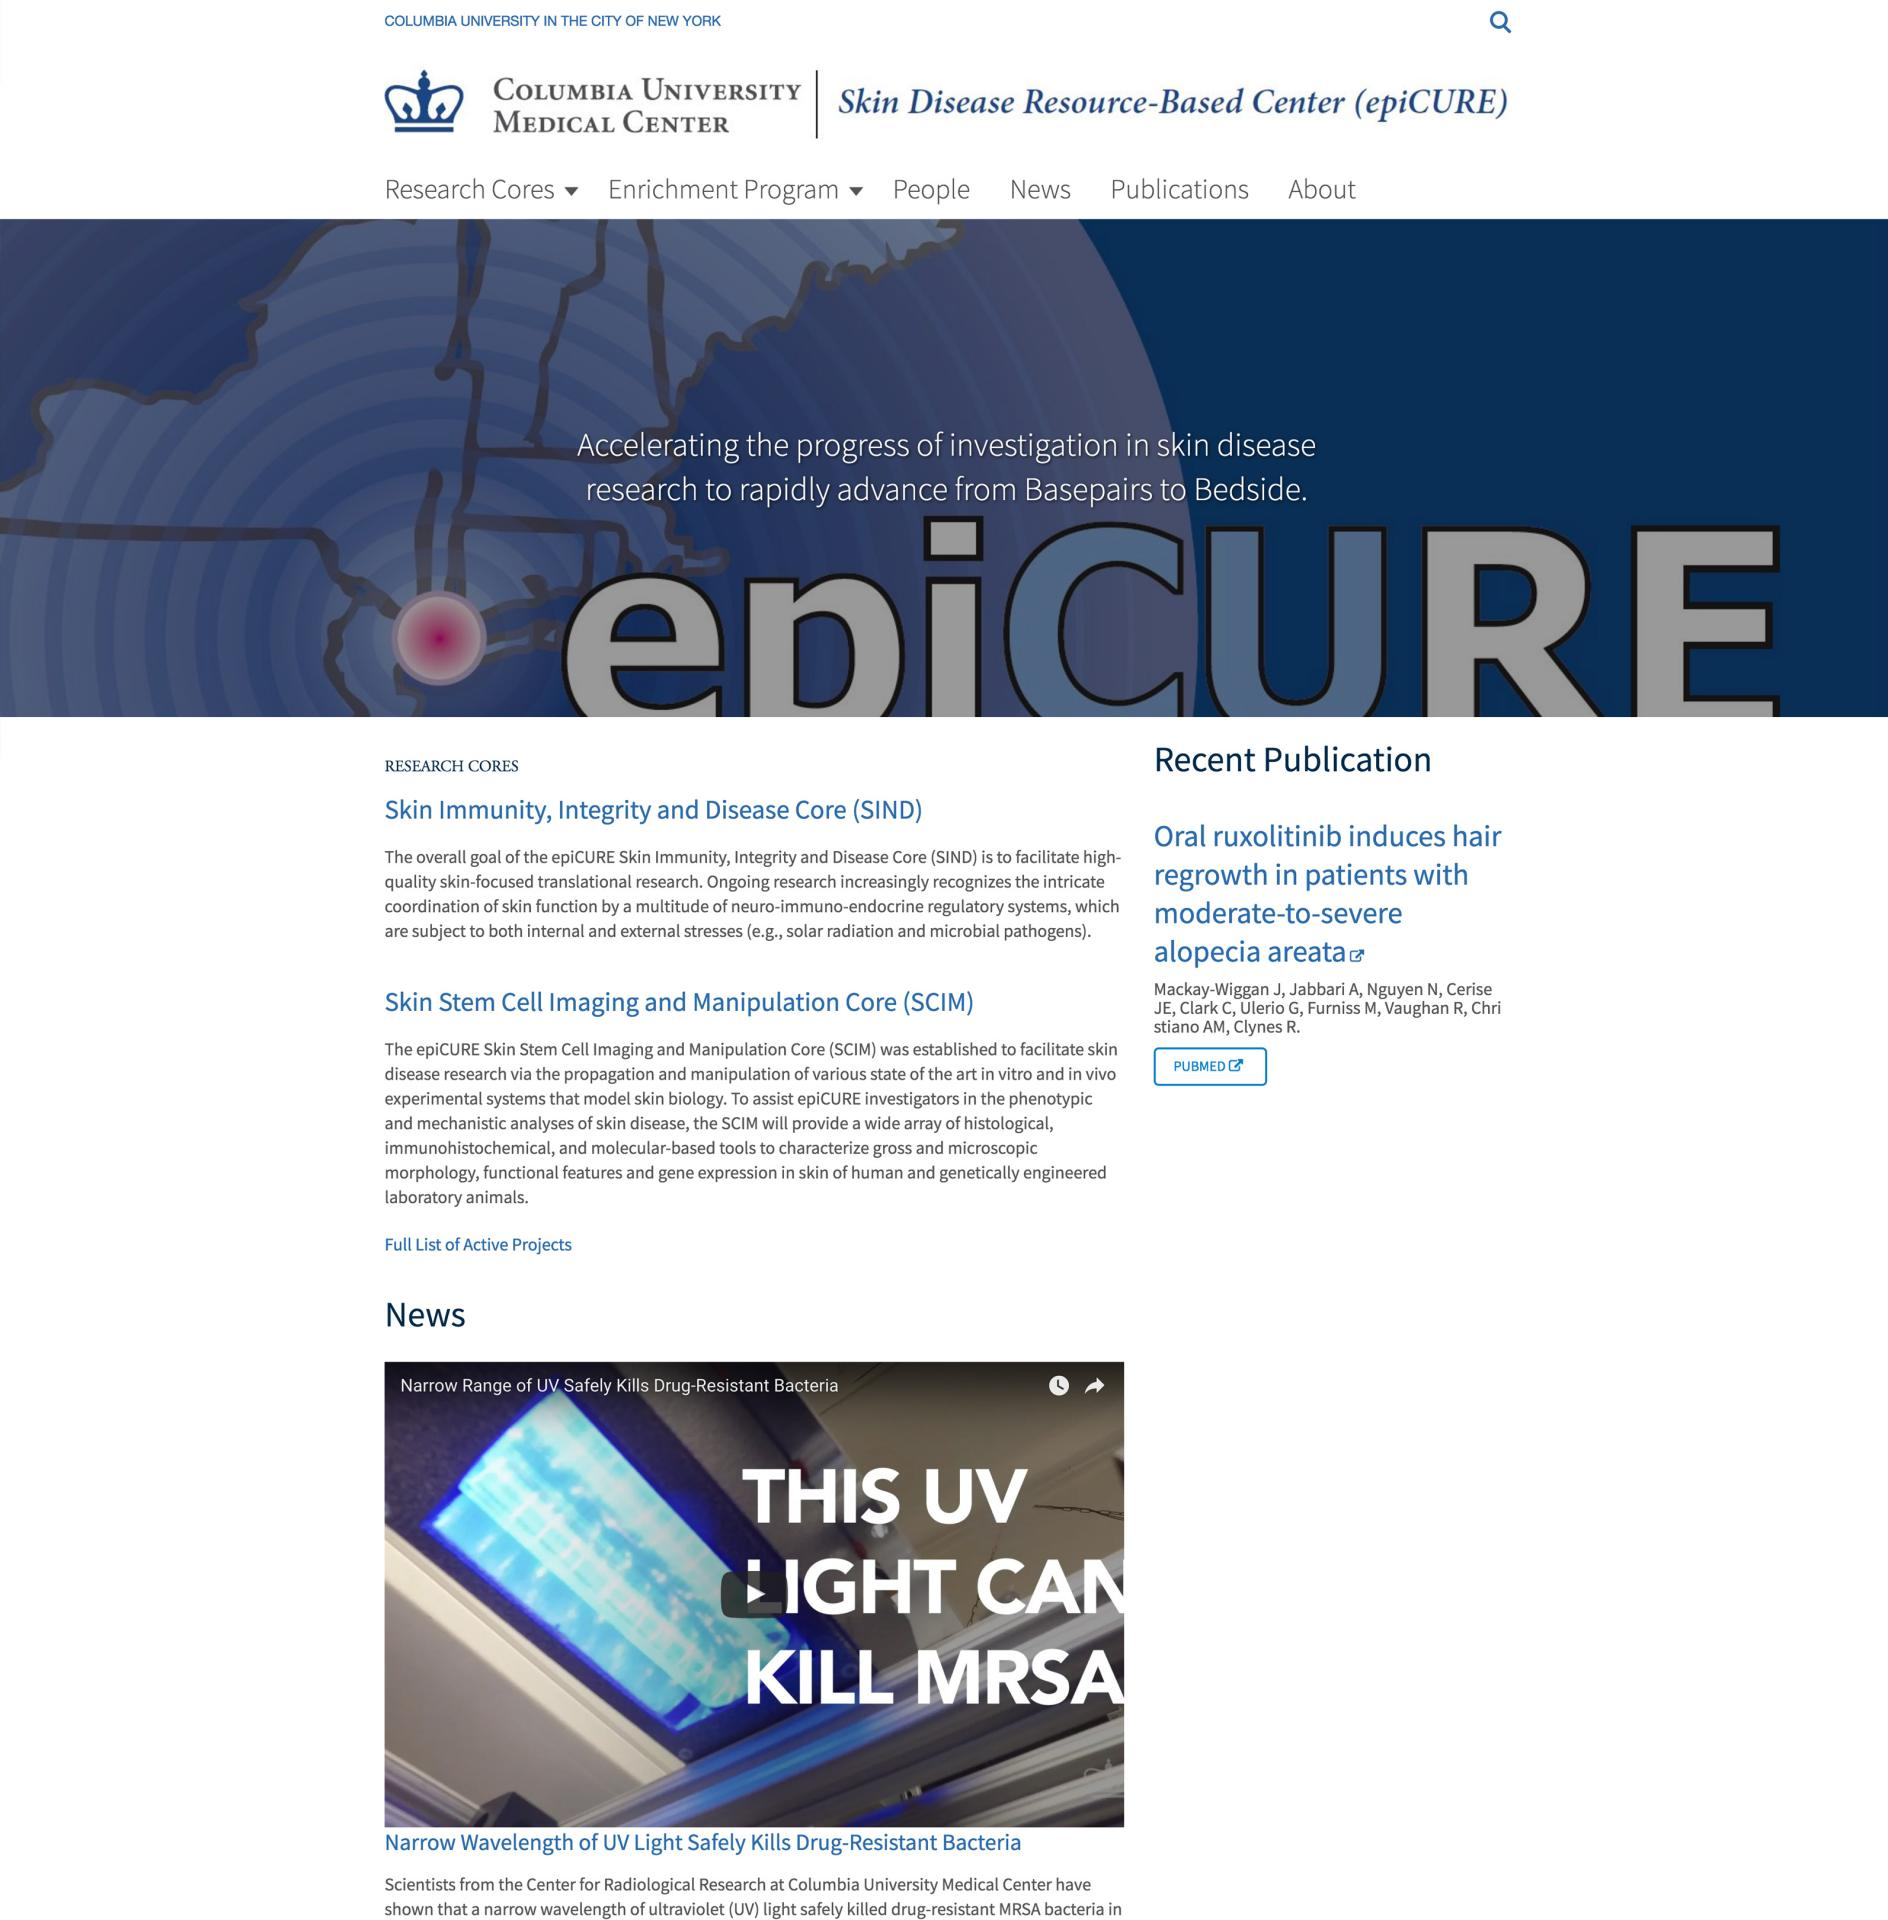 The epiCURE Center Site Screenshot